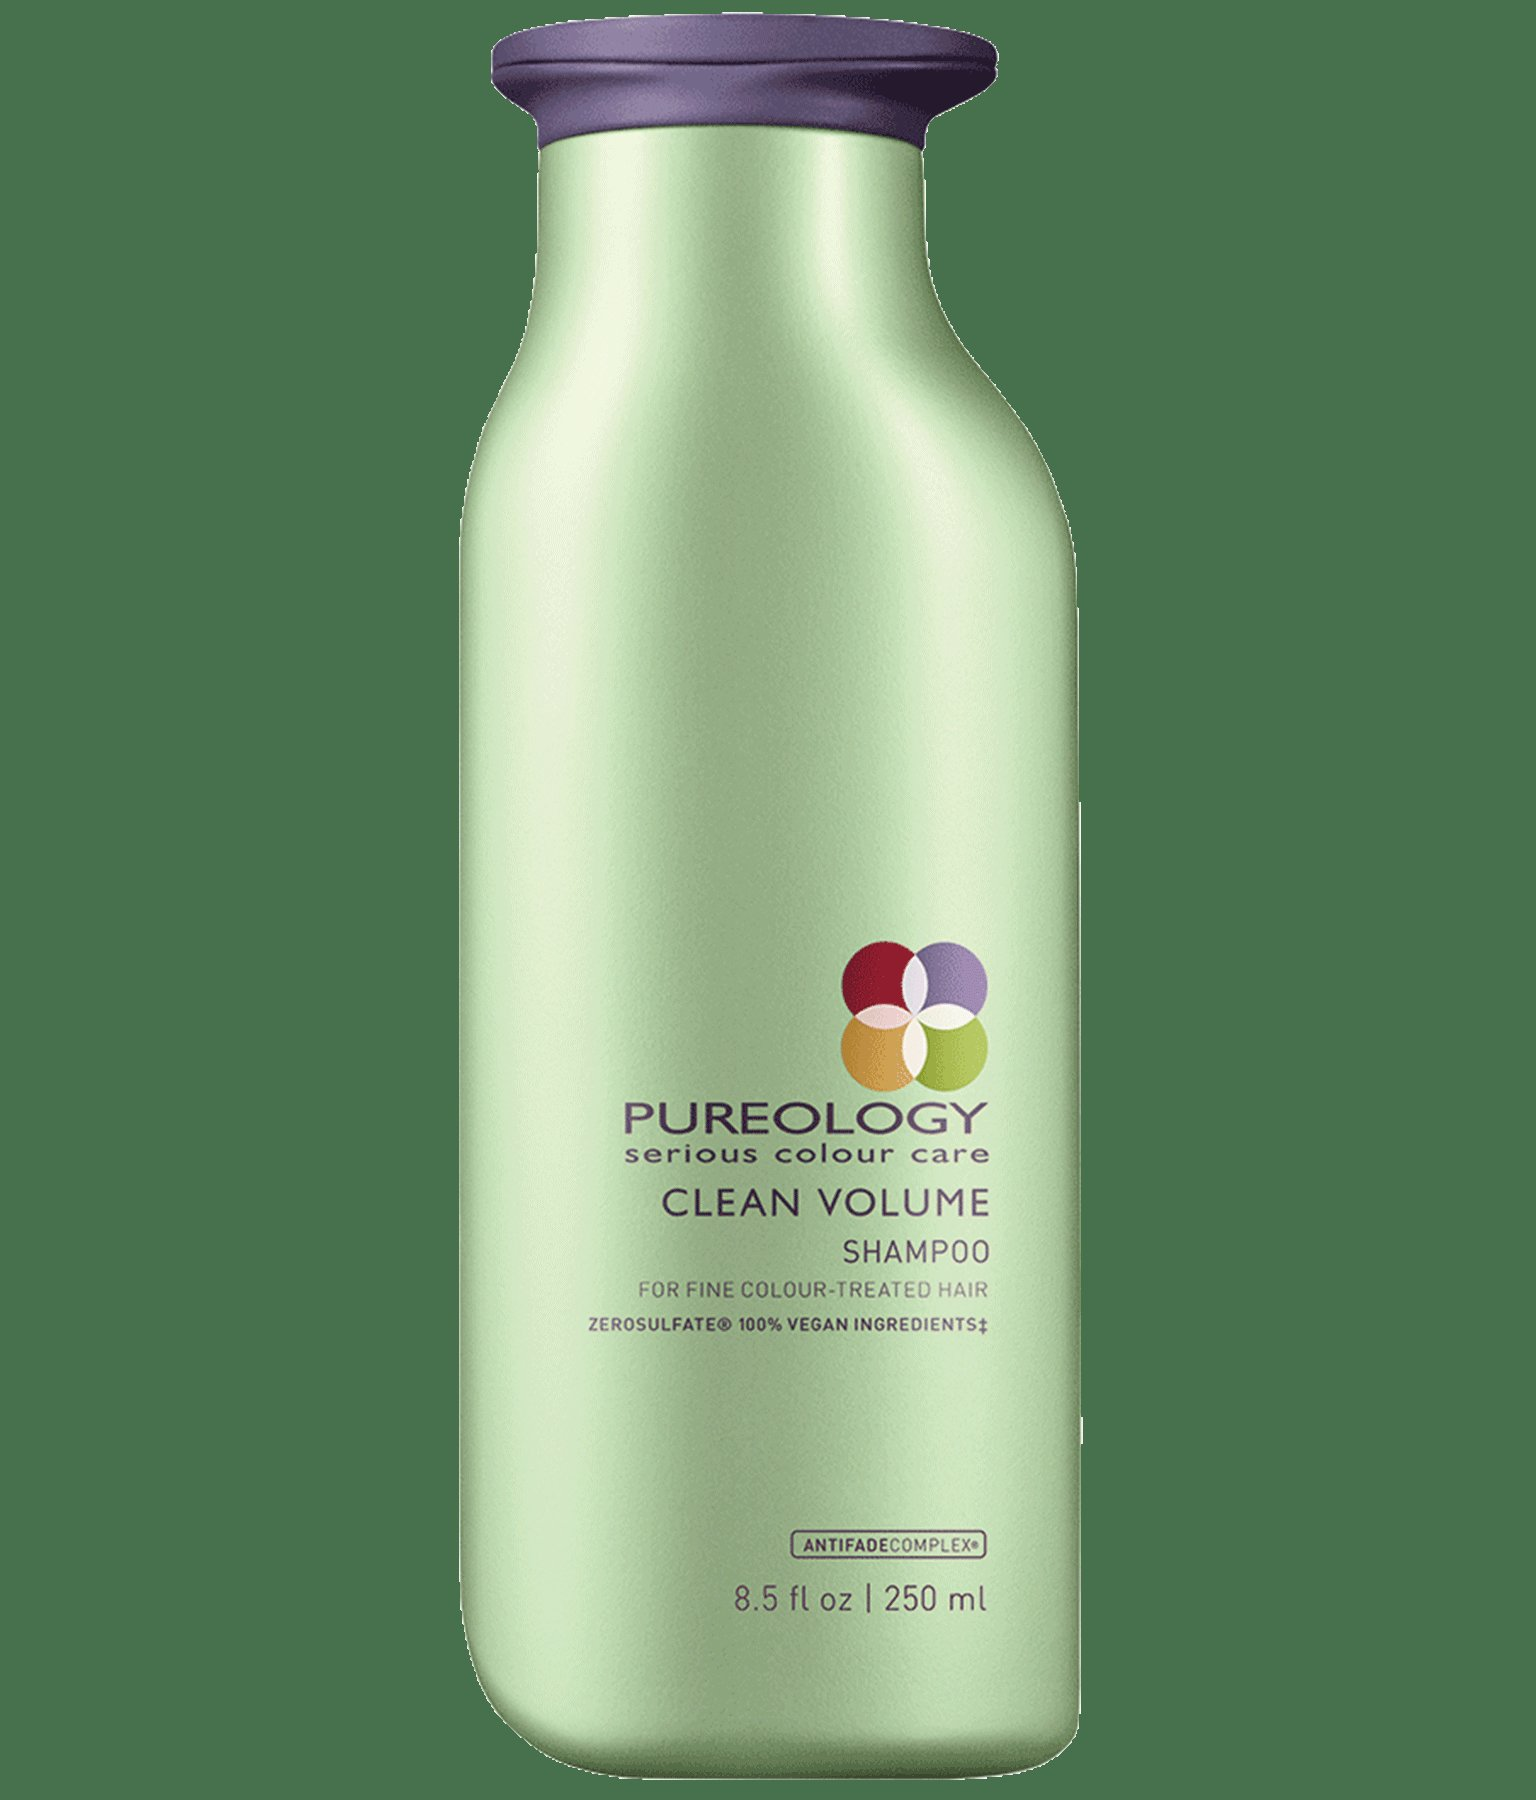 New Volumizing Shampoo Color Treated Hair Pureology Clean Volume Ideas With Pictures